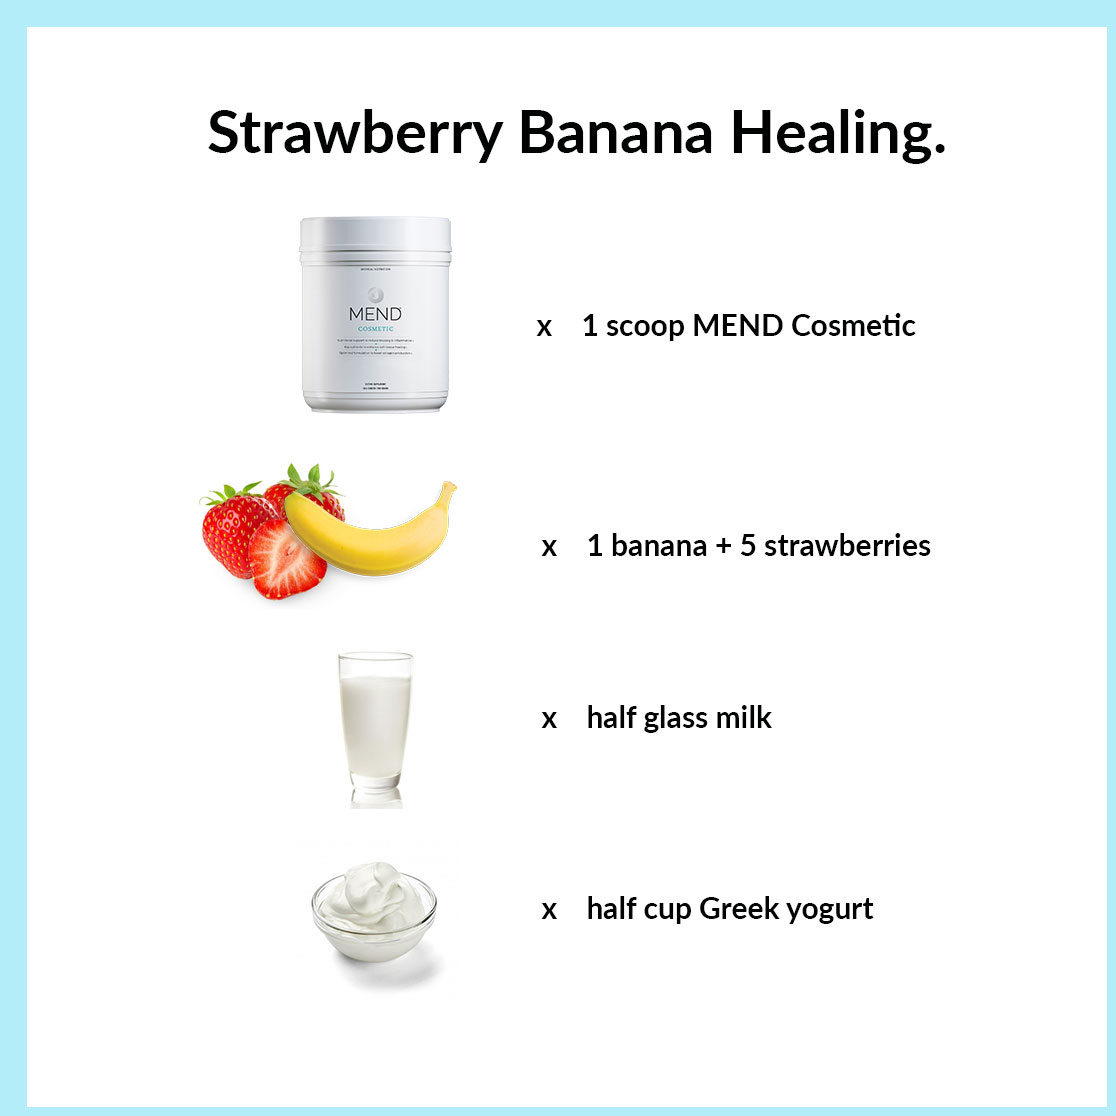 Strawberry Banana Healing